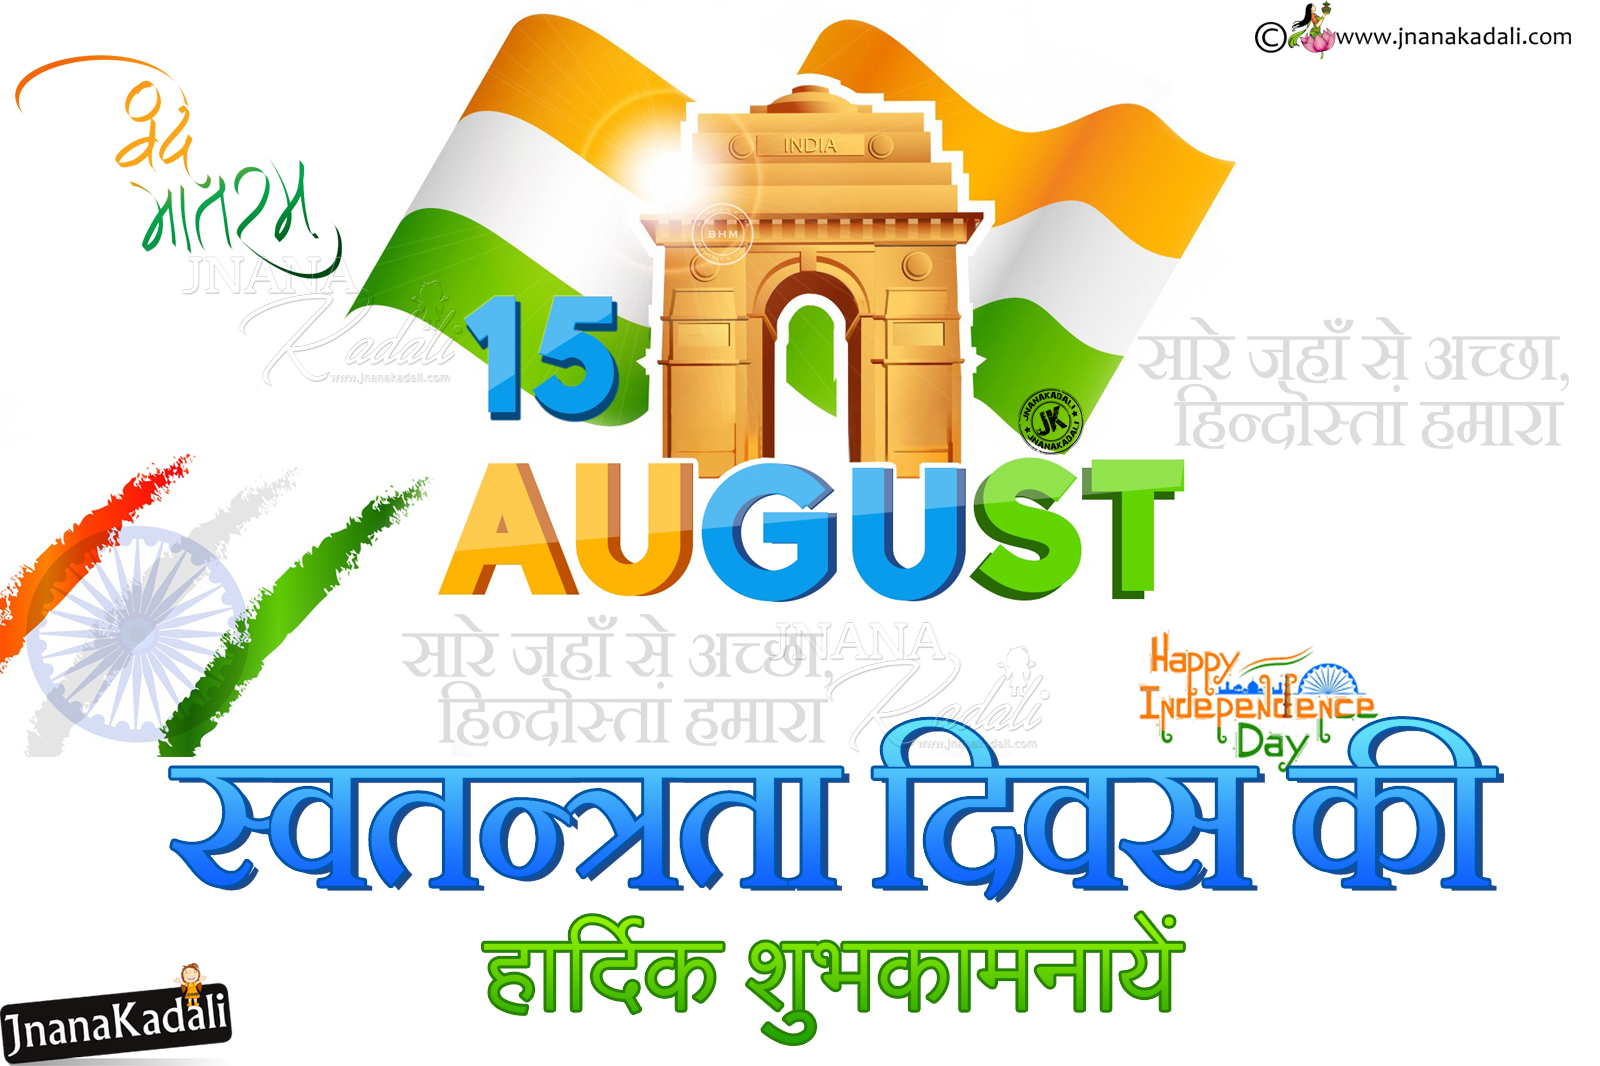 Patriotic Independence Day Hindi Messages With Indian Flag Hd